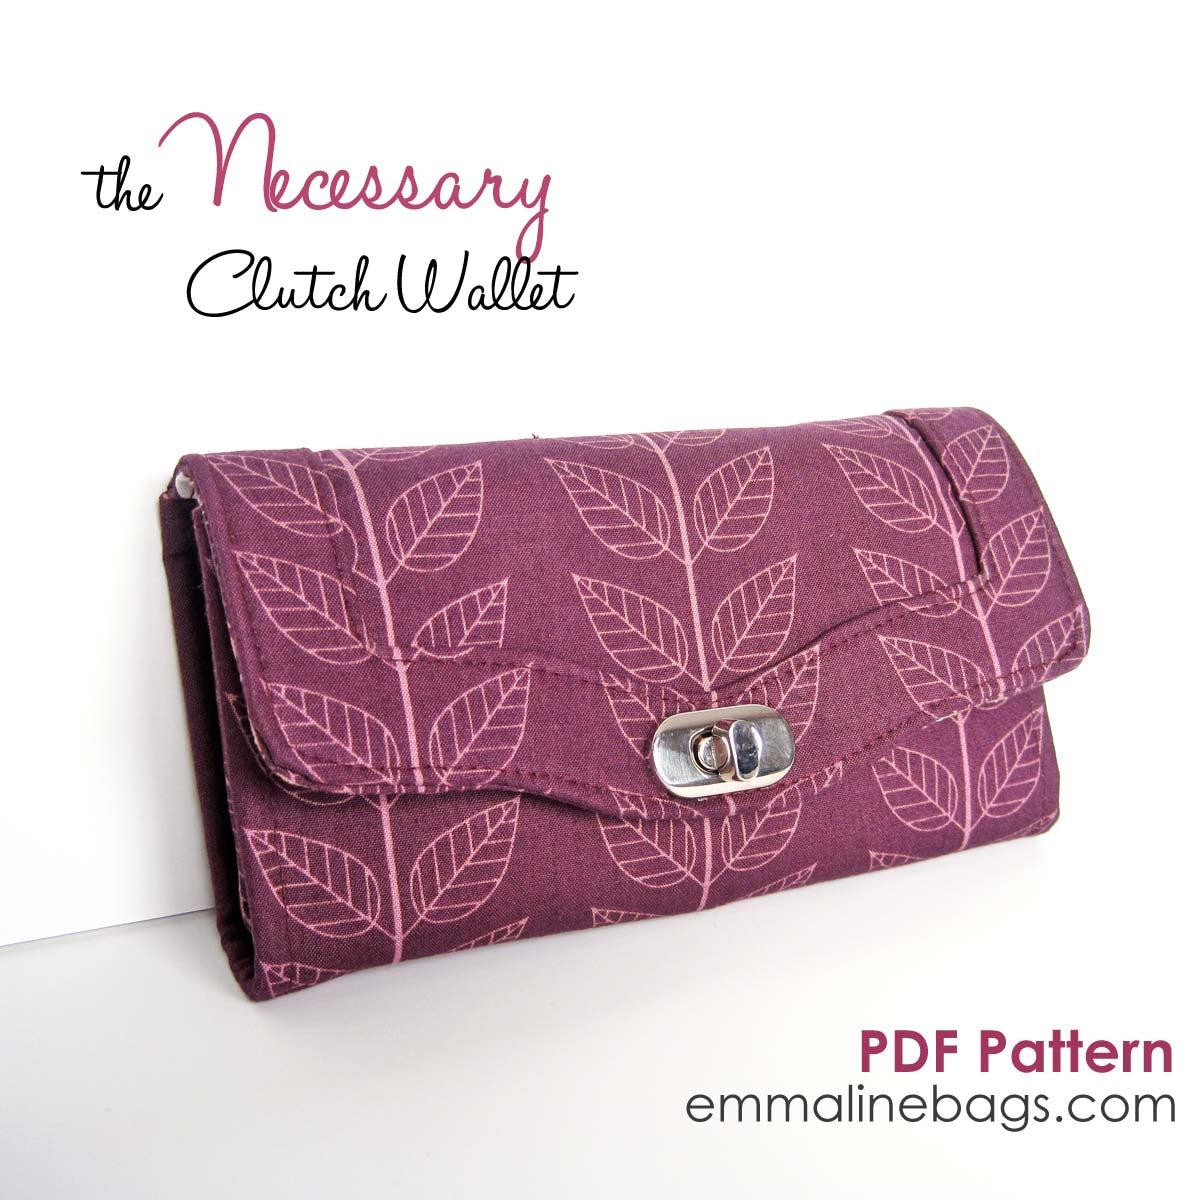 Necessary Clutch Wallet Paper Pattern By Emmaline Bags